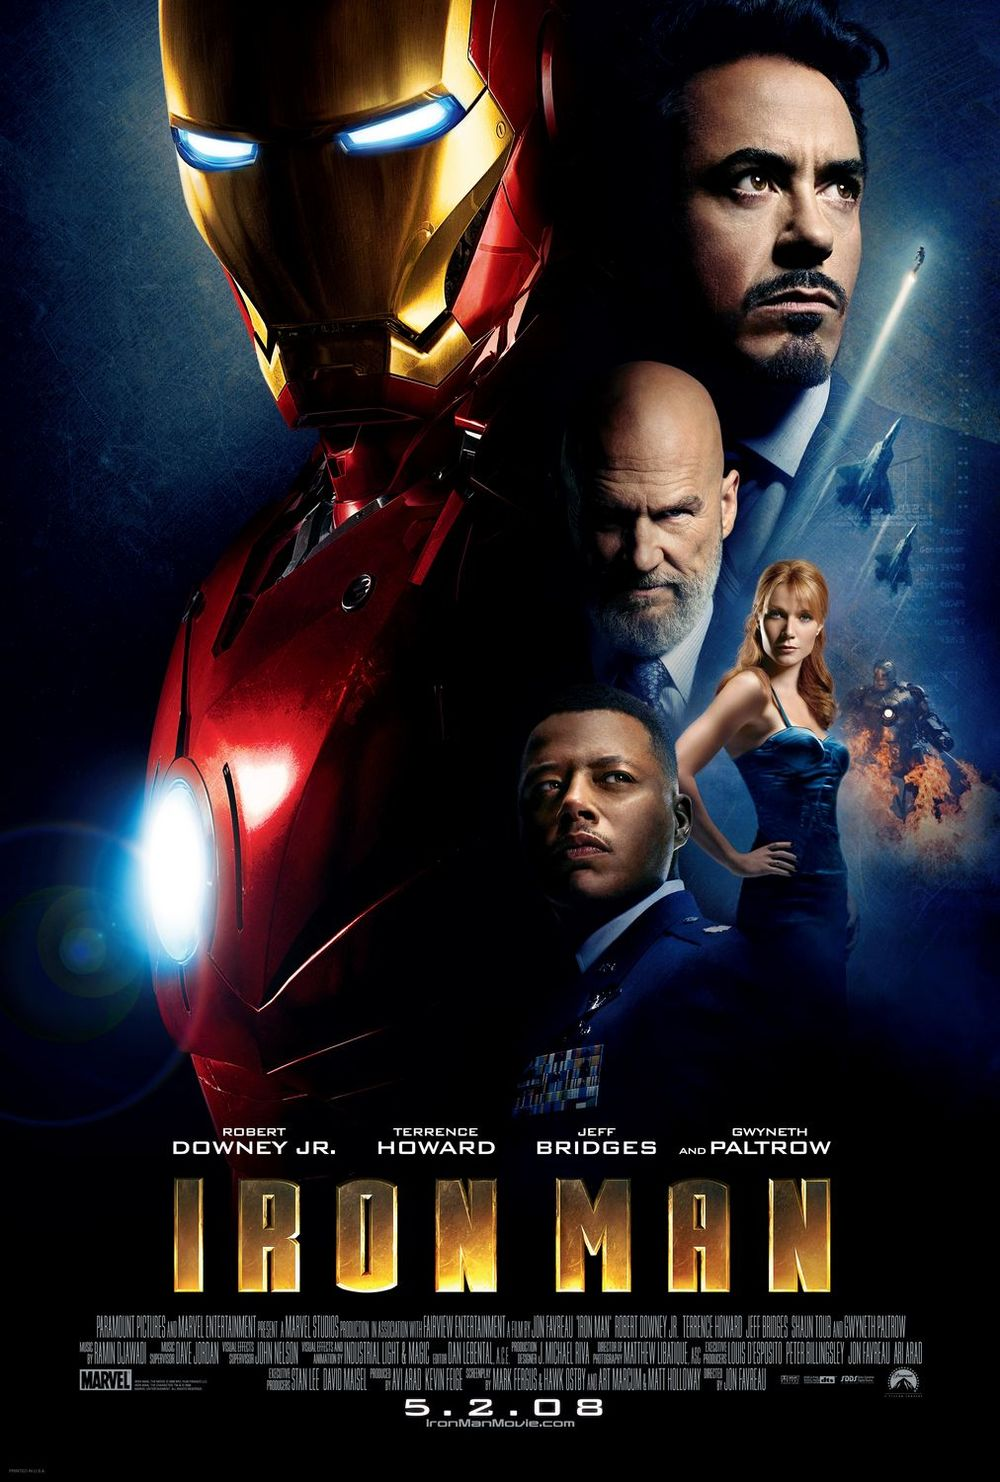 Iron Man started it all, single-handedly launched Marvel back into the movie business. While critically these films have received mixed reviews, Robert Downey Jr.'s performance as Tony Stark is the center of charisma that holds the cinematic universe together. Overall, the Iron Man trilogy has taken in $1.86 million, only second to one franchise...